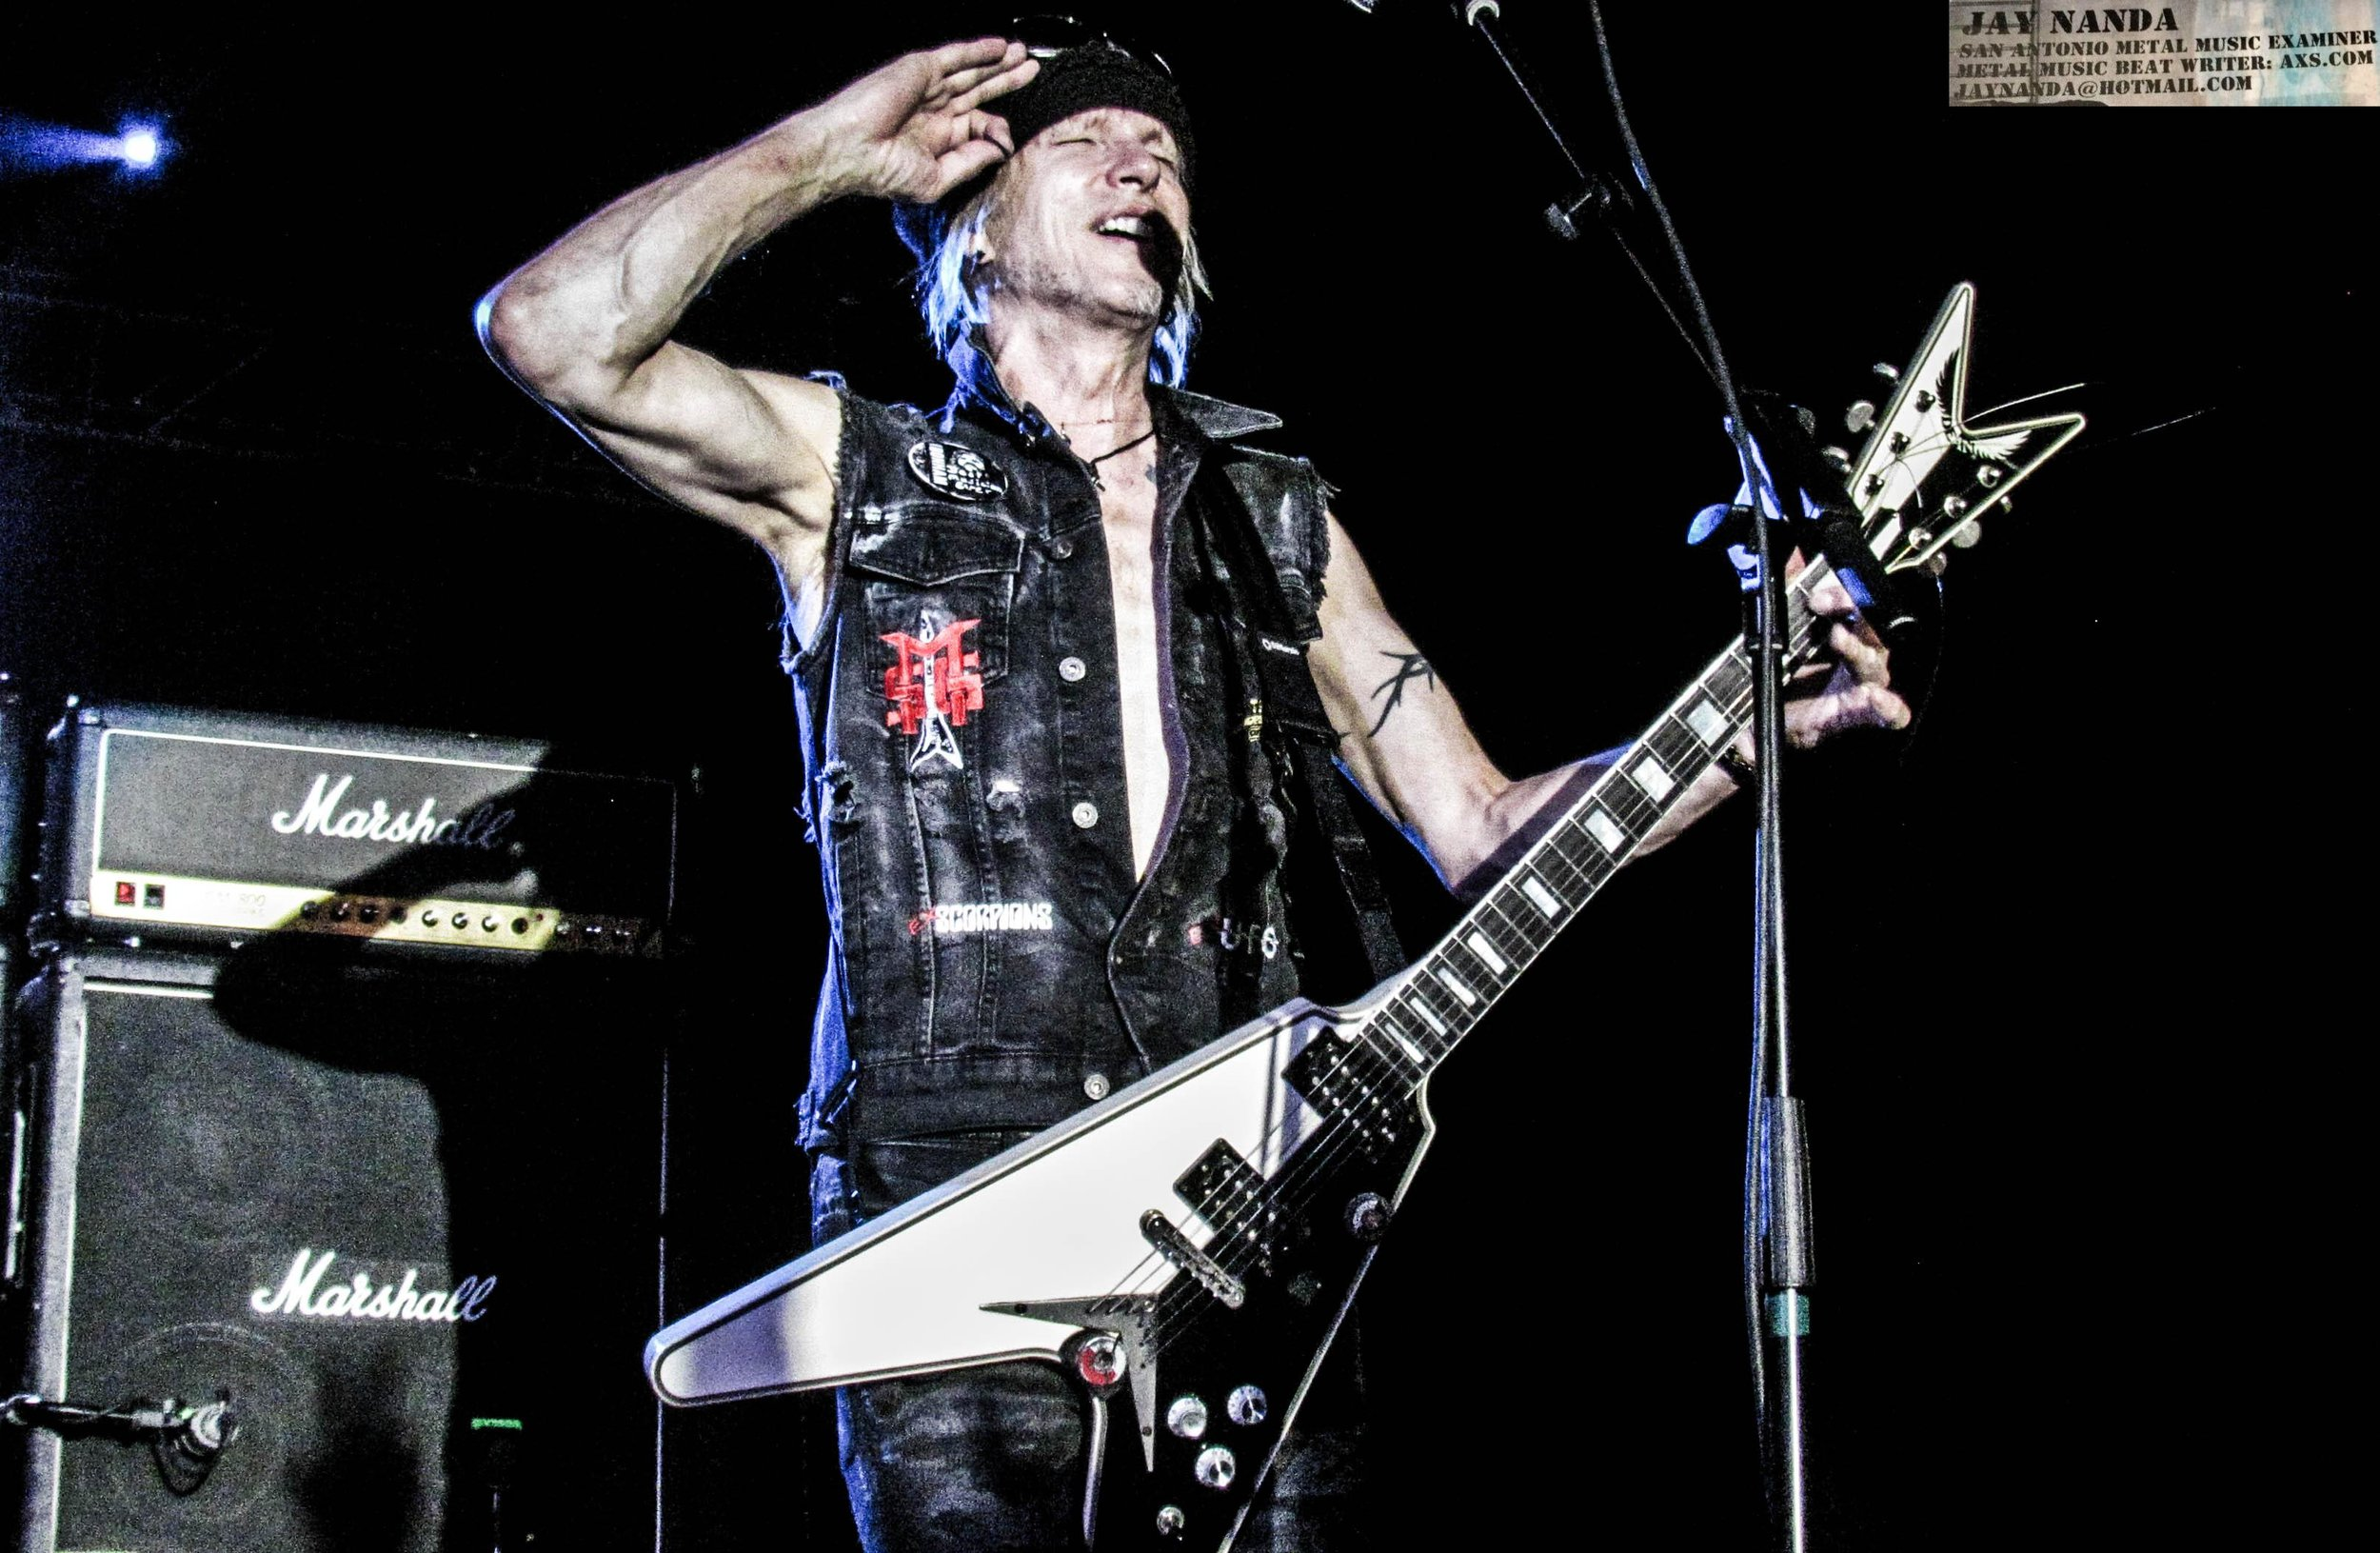 Schenker salutes the crowd, but in truth, the fans were not worthy to a 2-hour, 40-minute performance that spanned his Scorpions, MSG and UFO career.